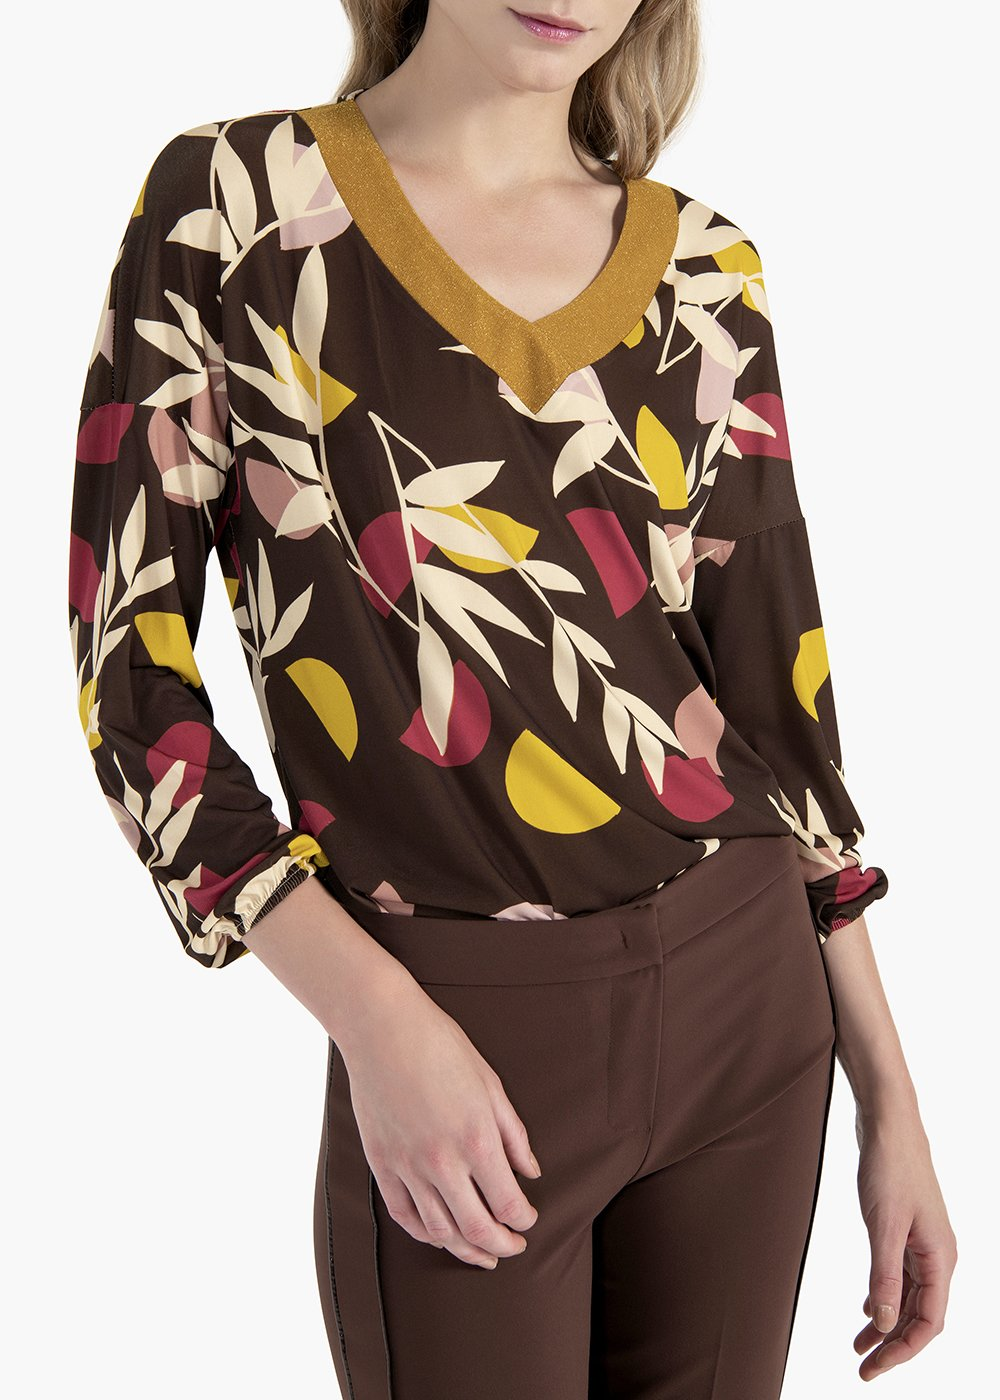 T-shirt Daniela in jersey with leaf print - Marrone / Floreale - Woman